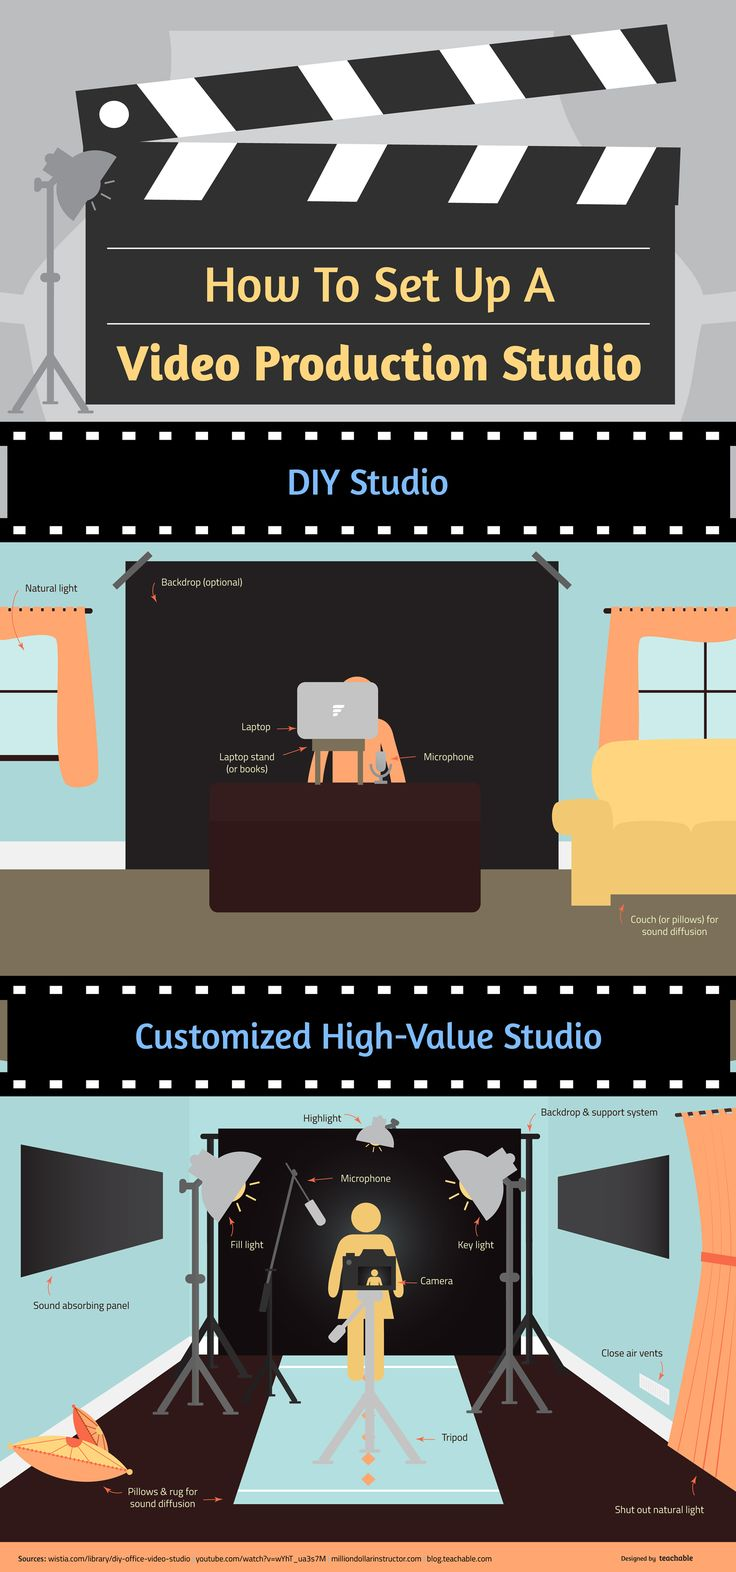 Creating engaging videos at home doesn't have to be expensive or technical, here are our tips and go-to shopping guide for an at-home studio set up that you can DIY yourself and list of high ROI equipment. Click to get our shopping list now!